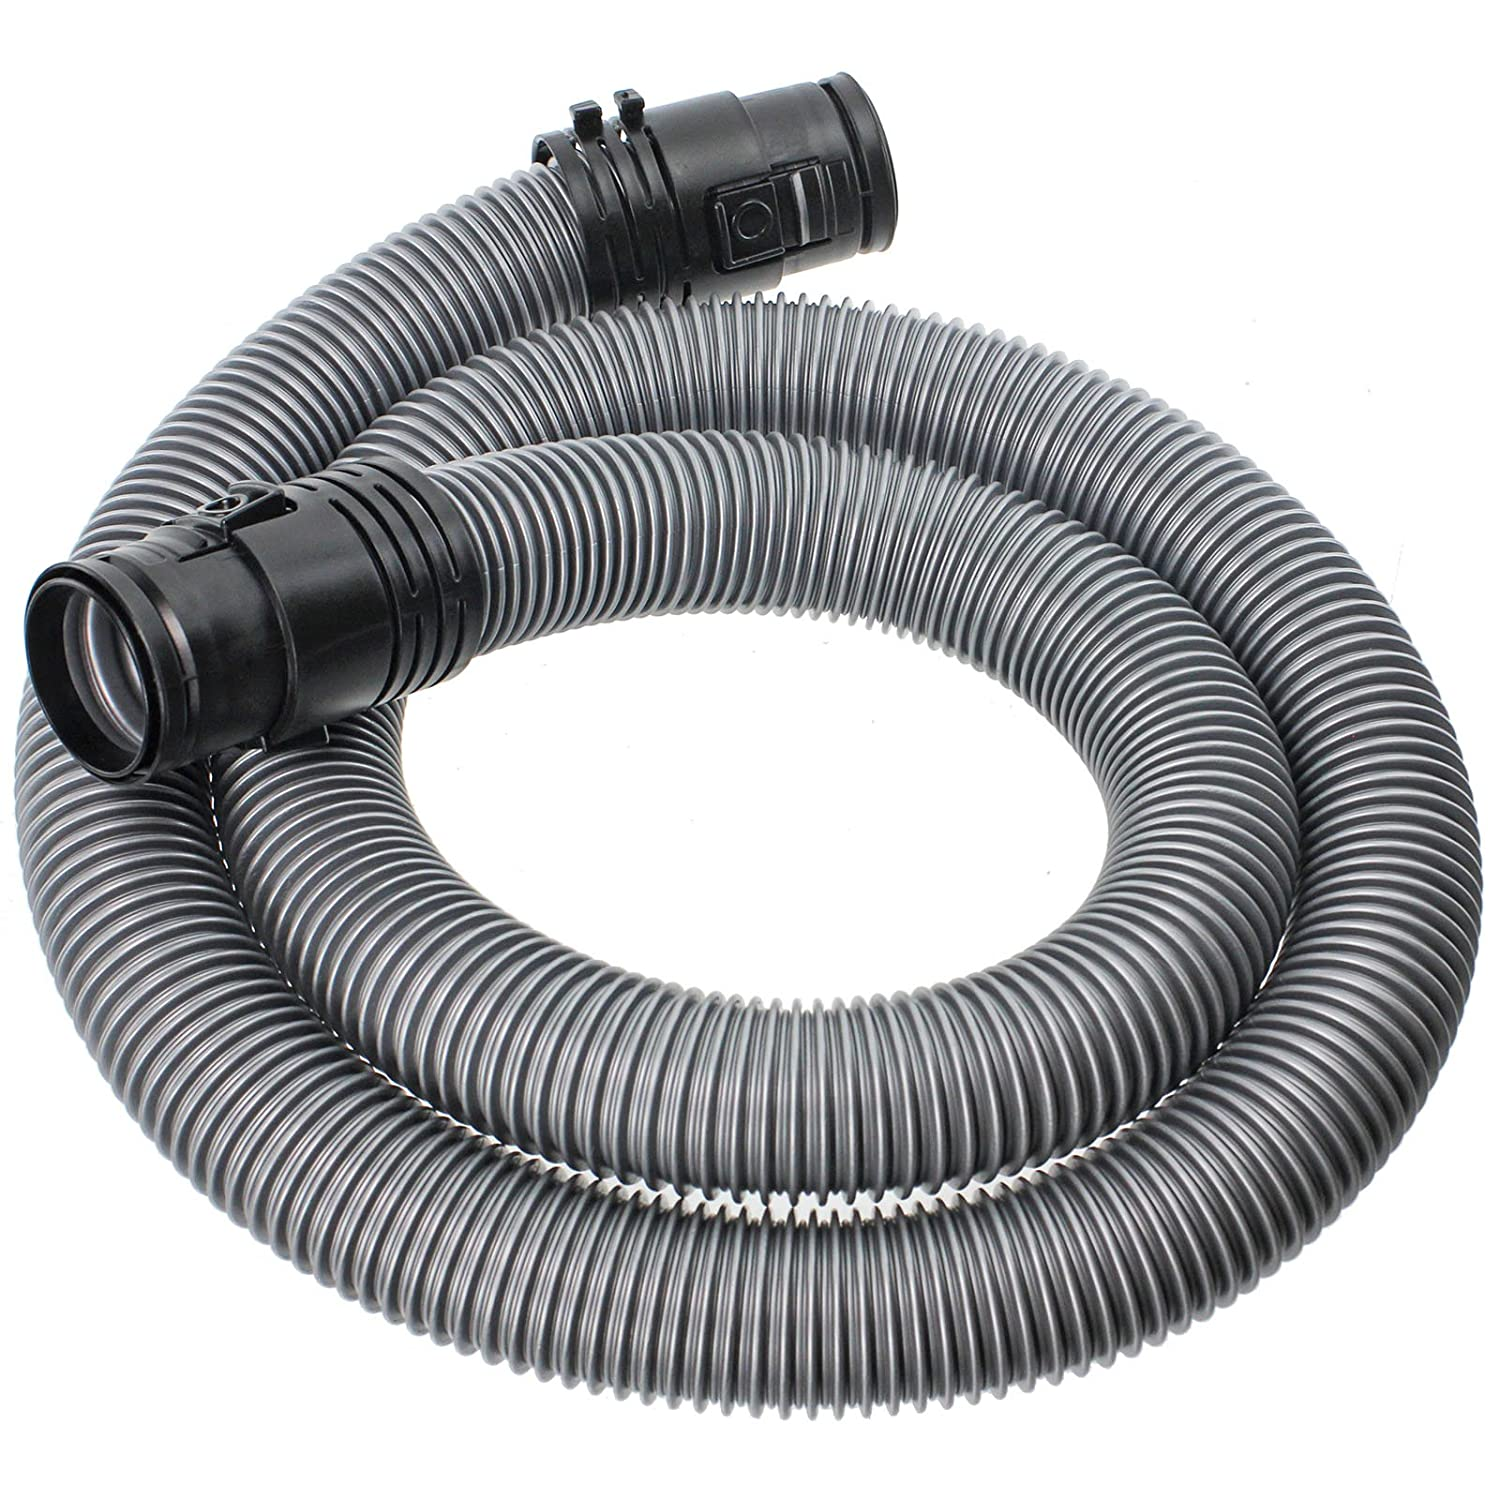 SPARES2GO 1.7m Pipe Hose for Miele C1 Classic Junior Ecoline Powerline Vacuum Cleaner (38mm, Silver)